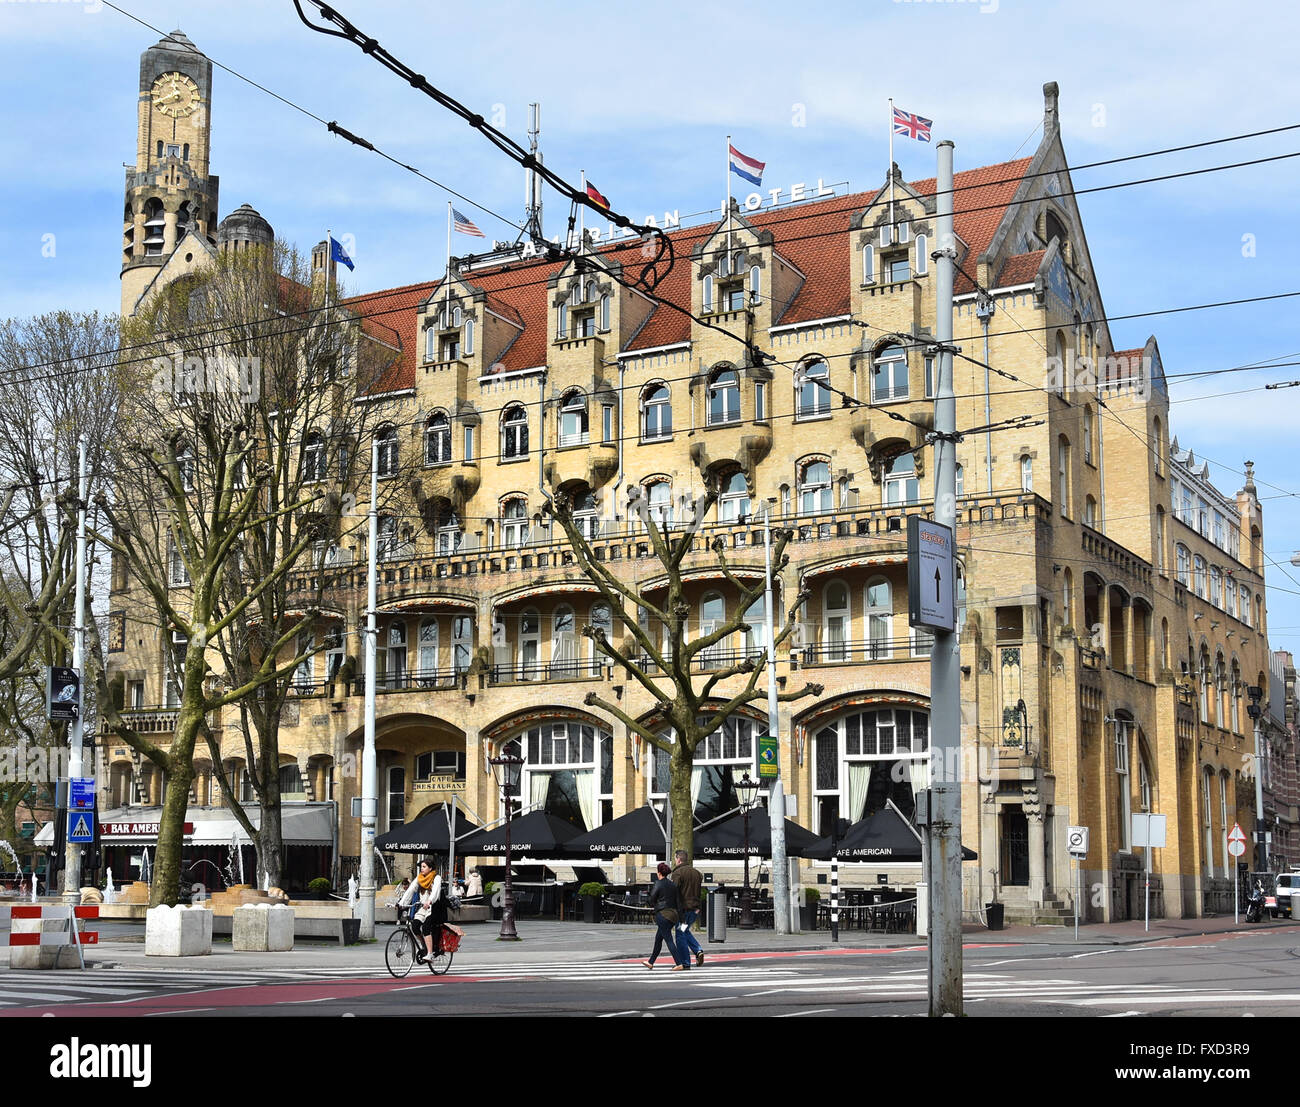 The American Hotel 1902 famous Art Nouveau style building in Leidseplein, Amsterdam Netherlands - Stock Image